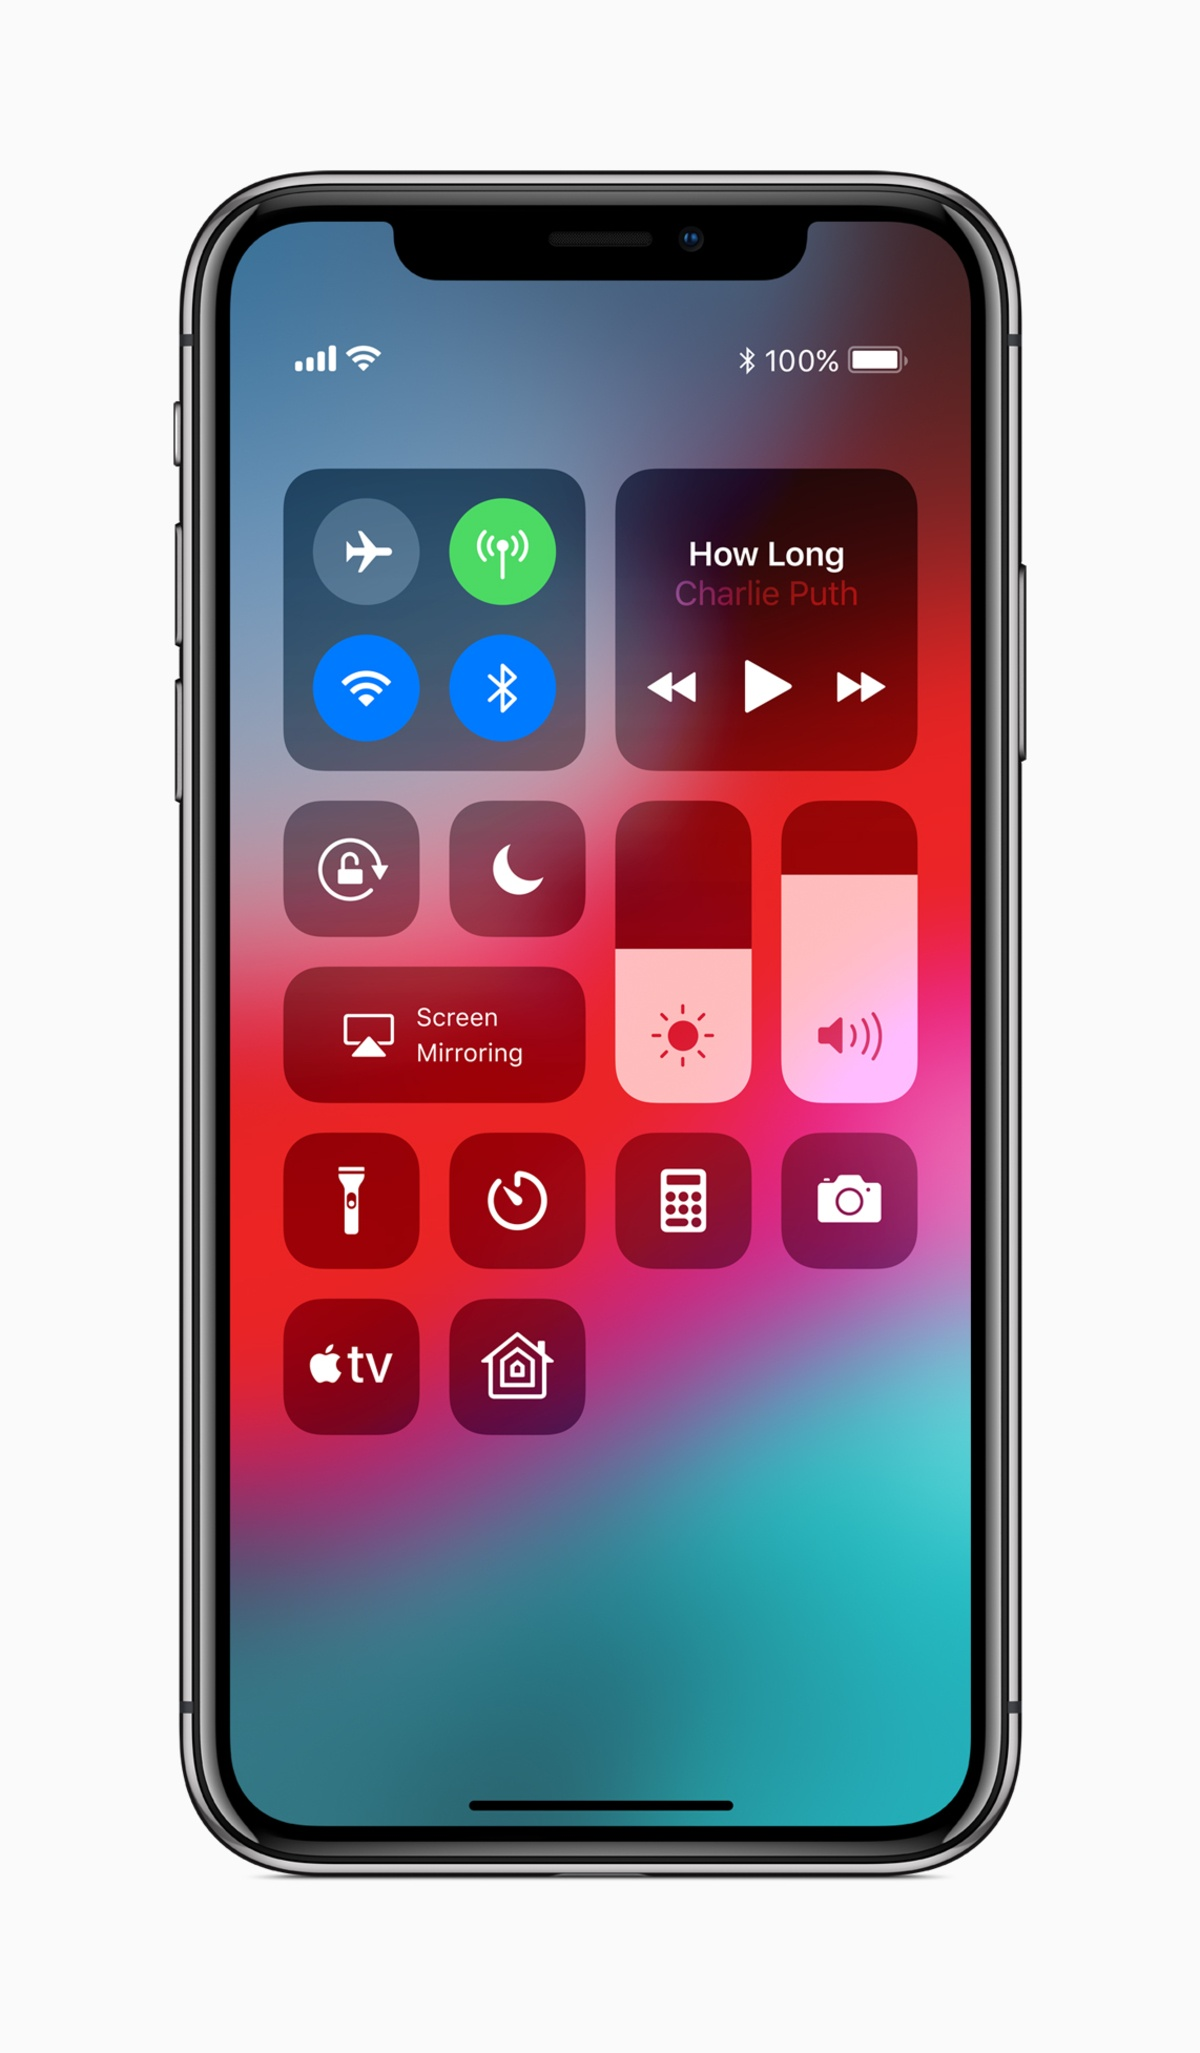 iphone denetim merkezi apple tv kumanda